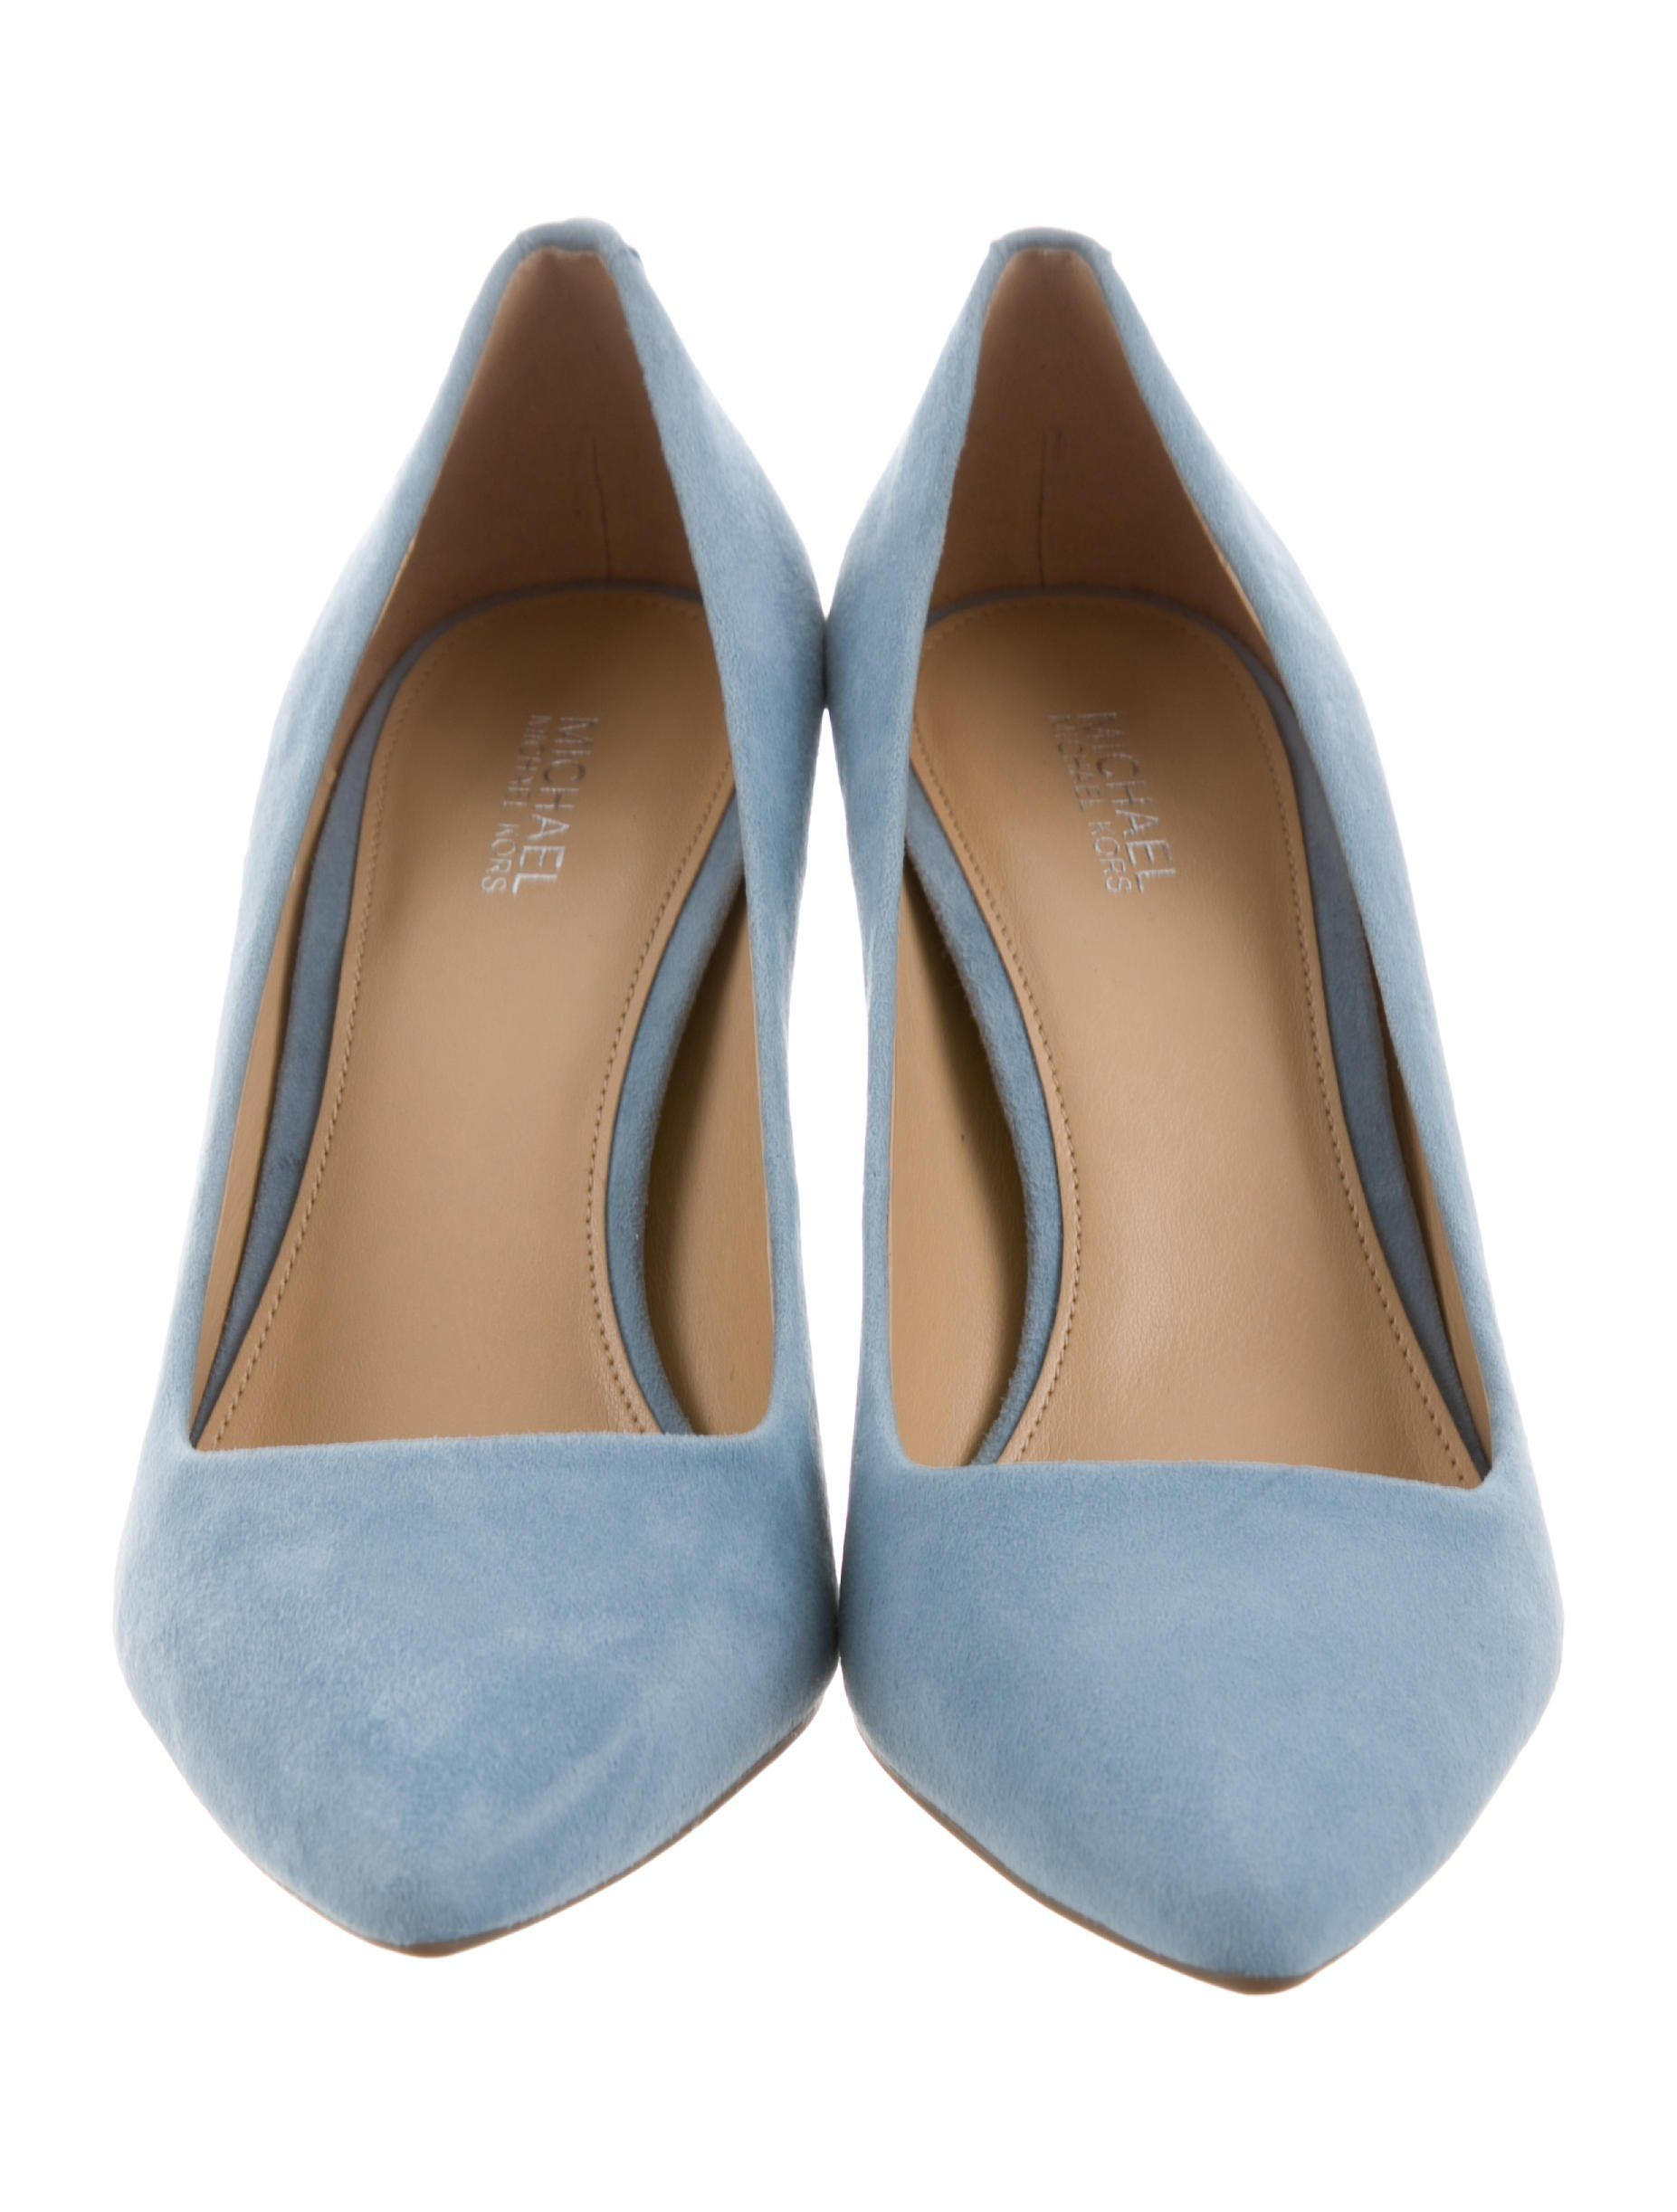 542e5561e7c Sky blue suede Michael Michael Kors Dorothy Flex pumps with pointed toes  and covered heels. Includes box.